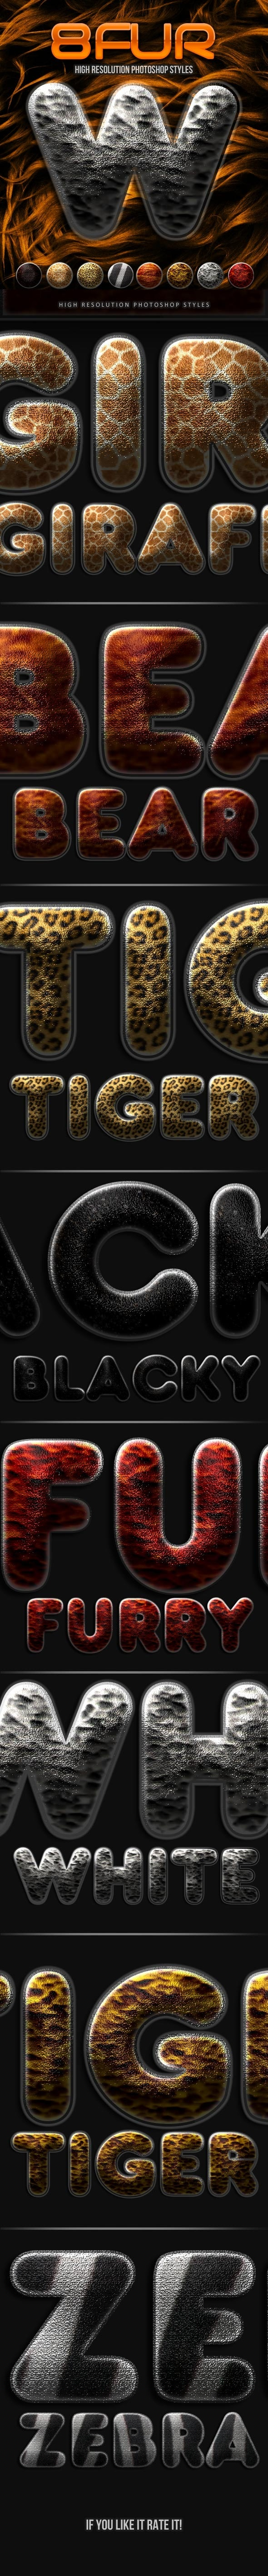 8 Fur Photoshop Styles - Text Effects Styles